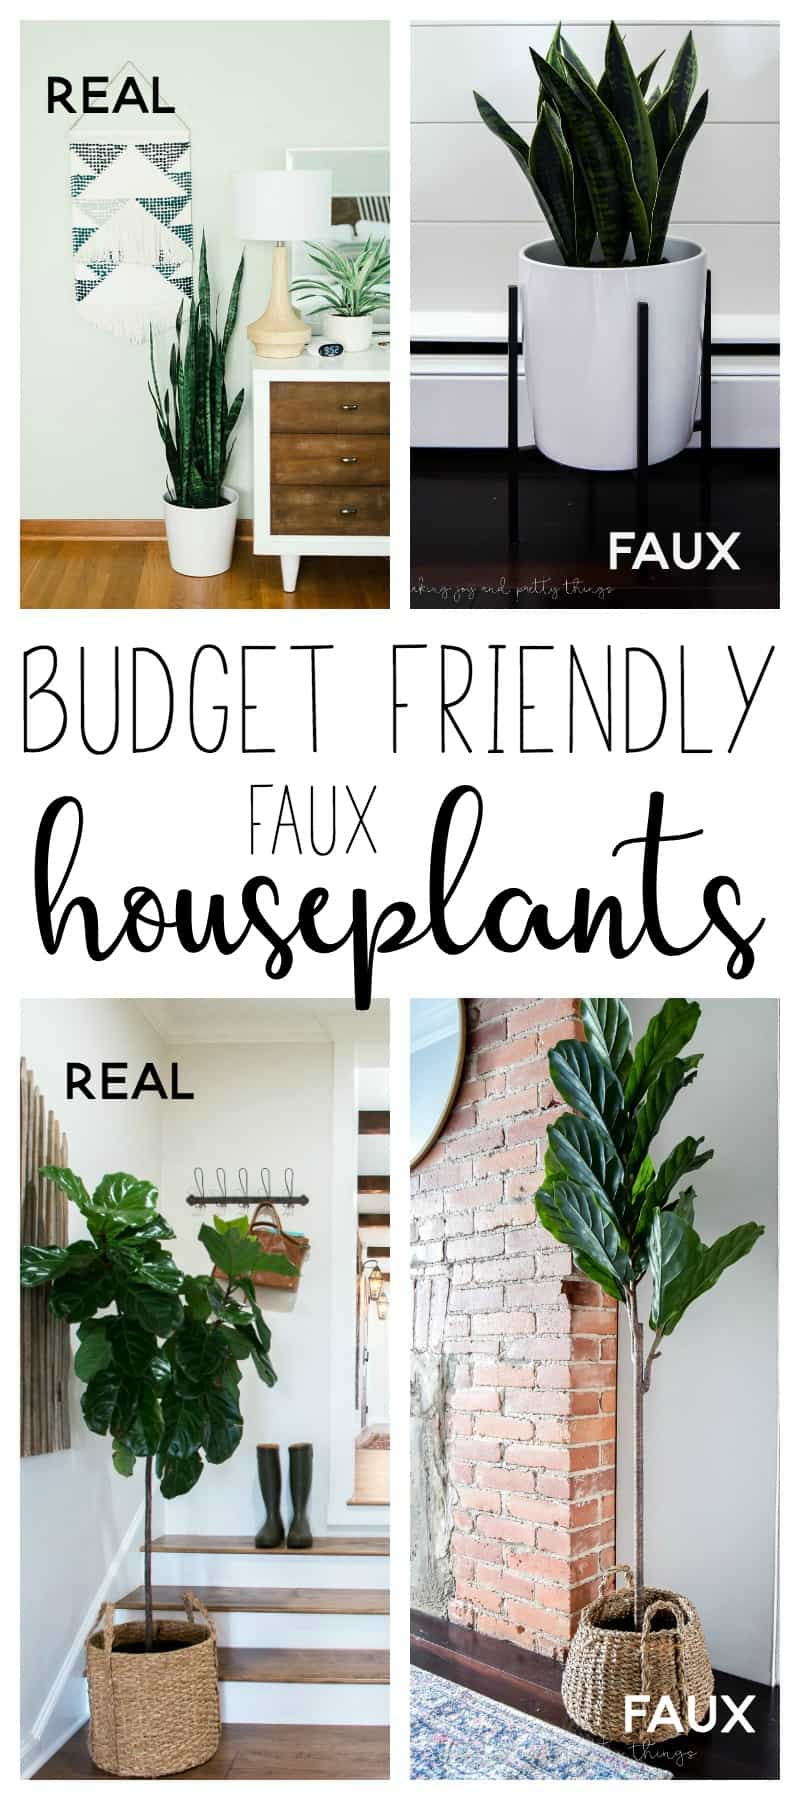 faux house plants | houseplants indoor | fiddle leaf fig tree | snake plant | sansevieria | indoor plants | budget friendly faux plants | house plants decor | home decor ideas | home decor on a budget | home style | favorite faux houseplants